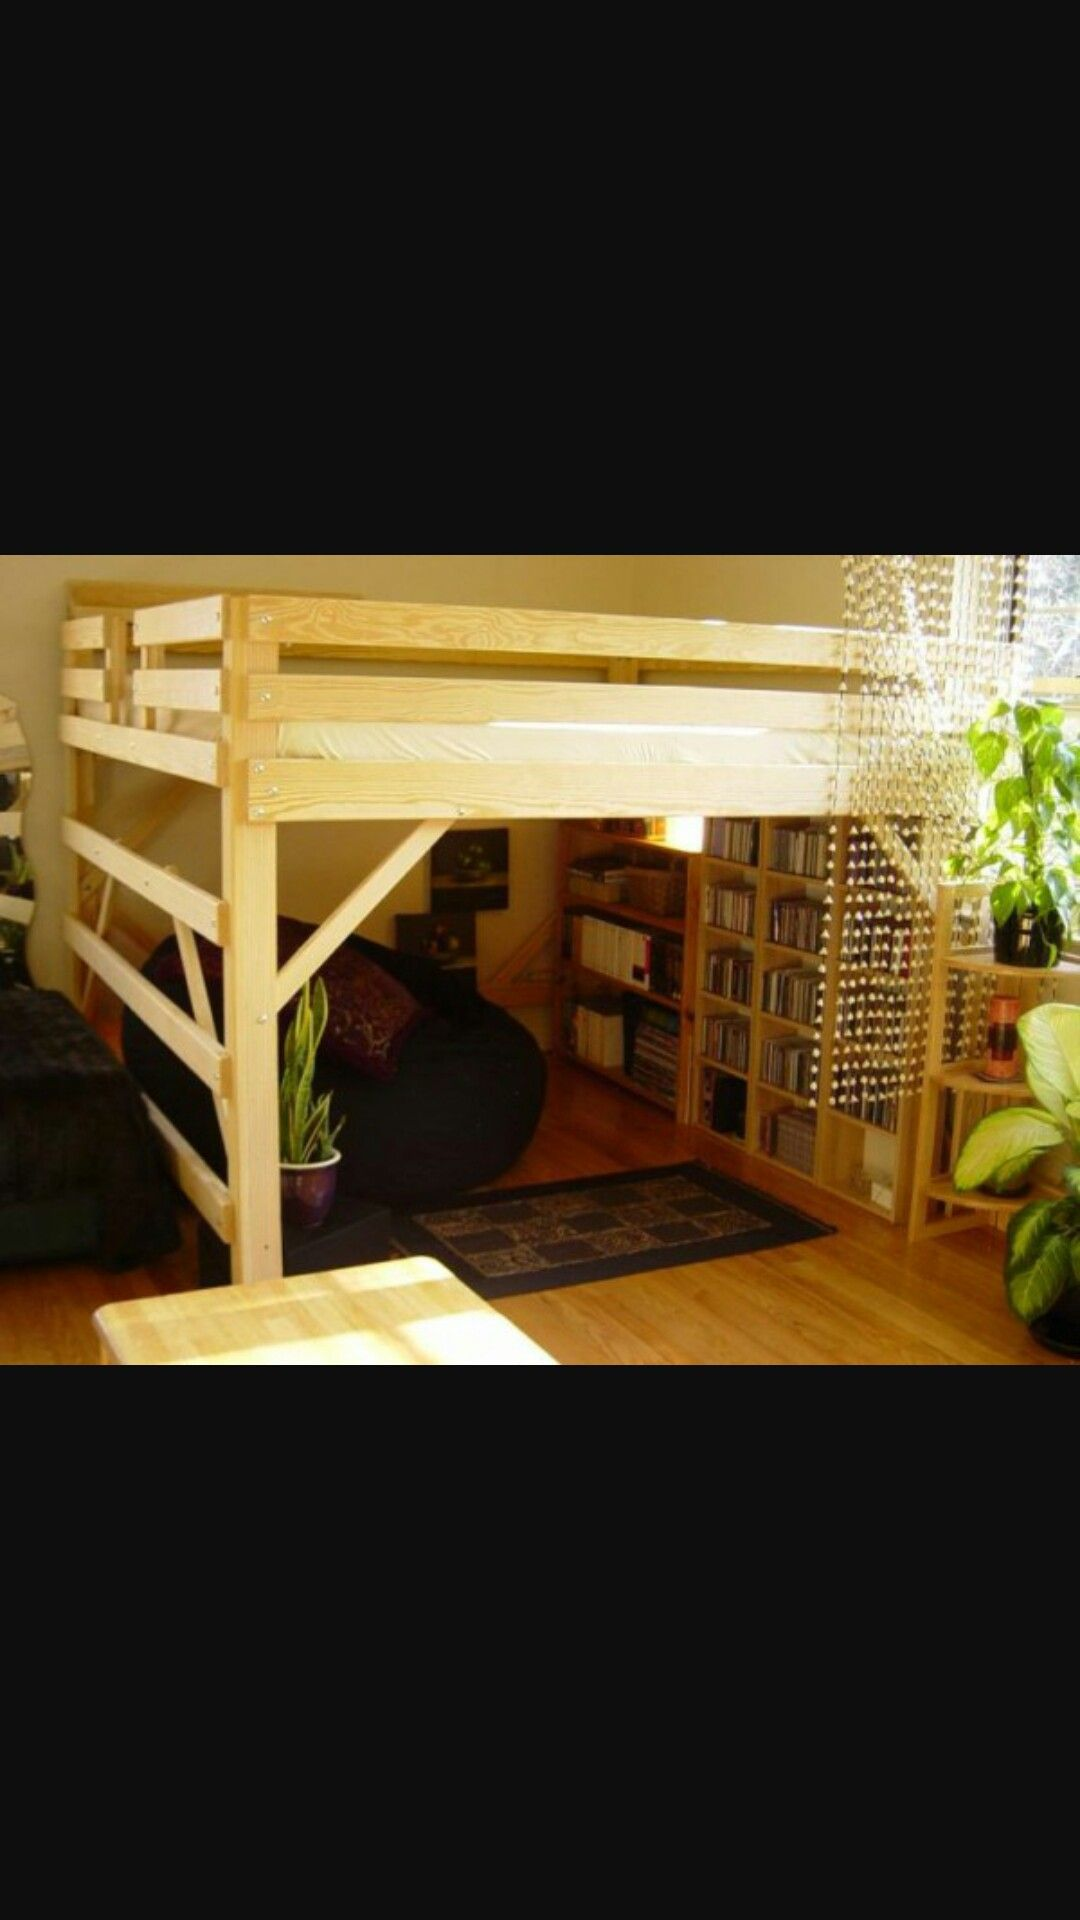 King Size Loft Bed Plans Great Looking Kids Room But